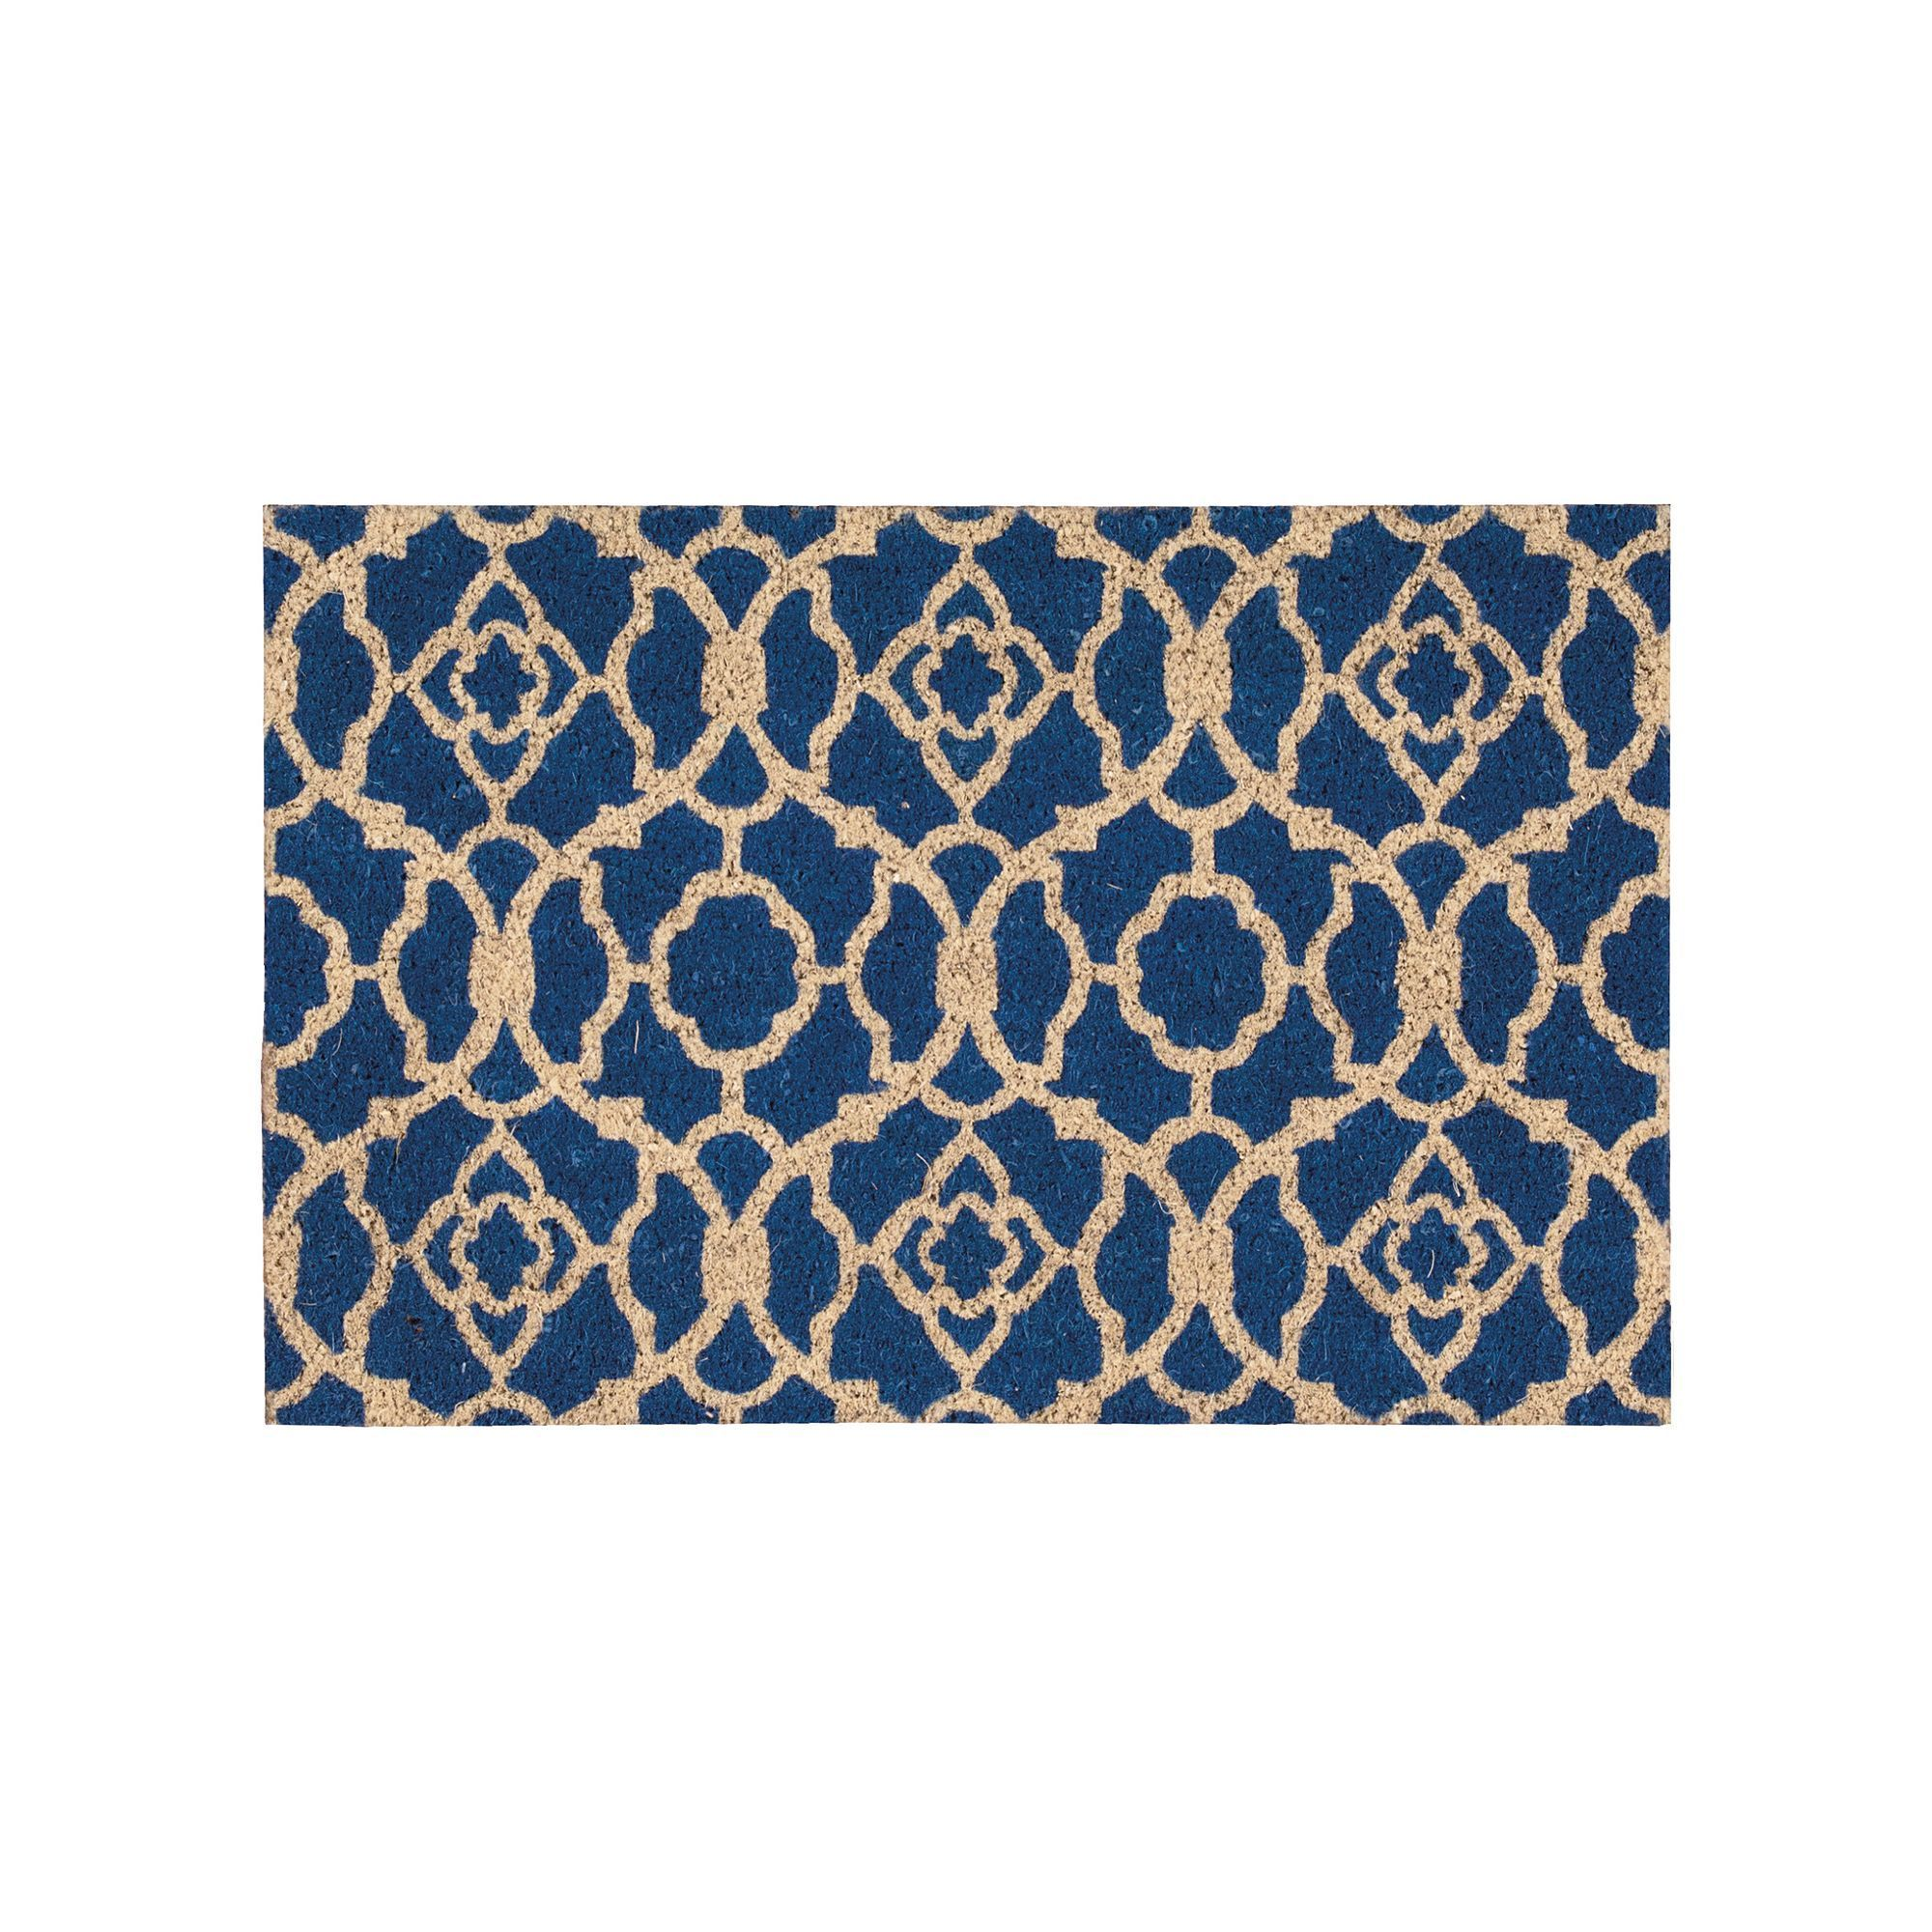 bev grey duck mat door house egg chevron weather guard image ideas mats outstanding blue plan design kukoon doormat close up front